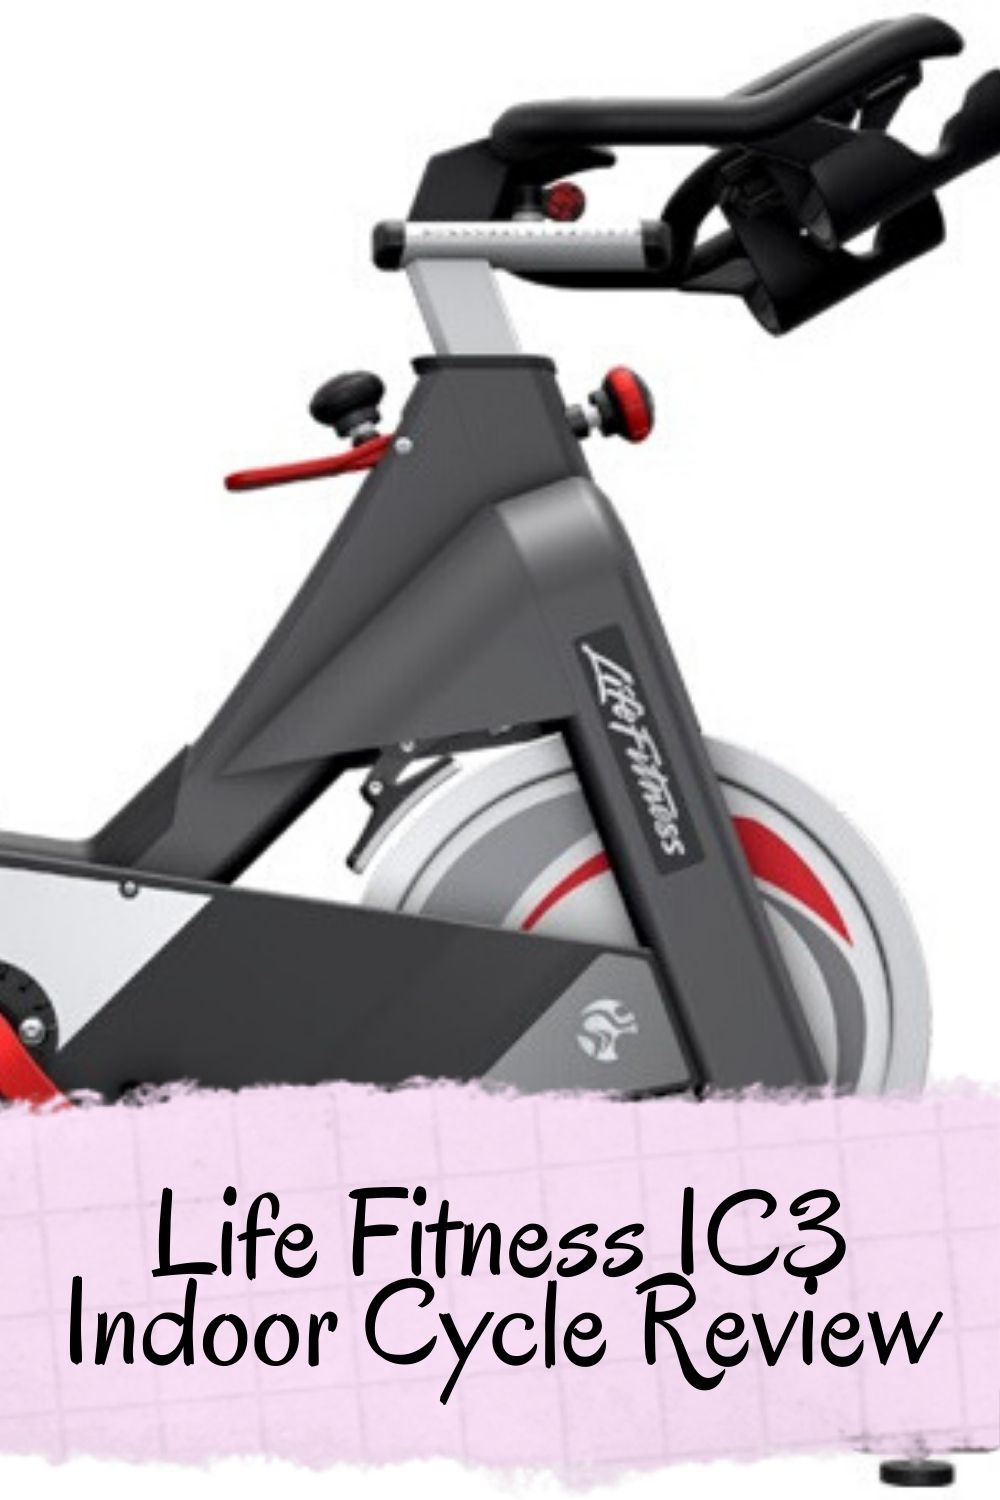 Life Fitness Ic3 Indoor Cycle Review Biking Workout Fit Life Bike Trainer